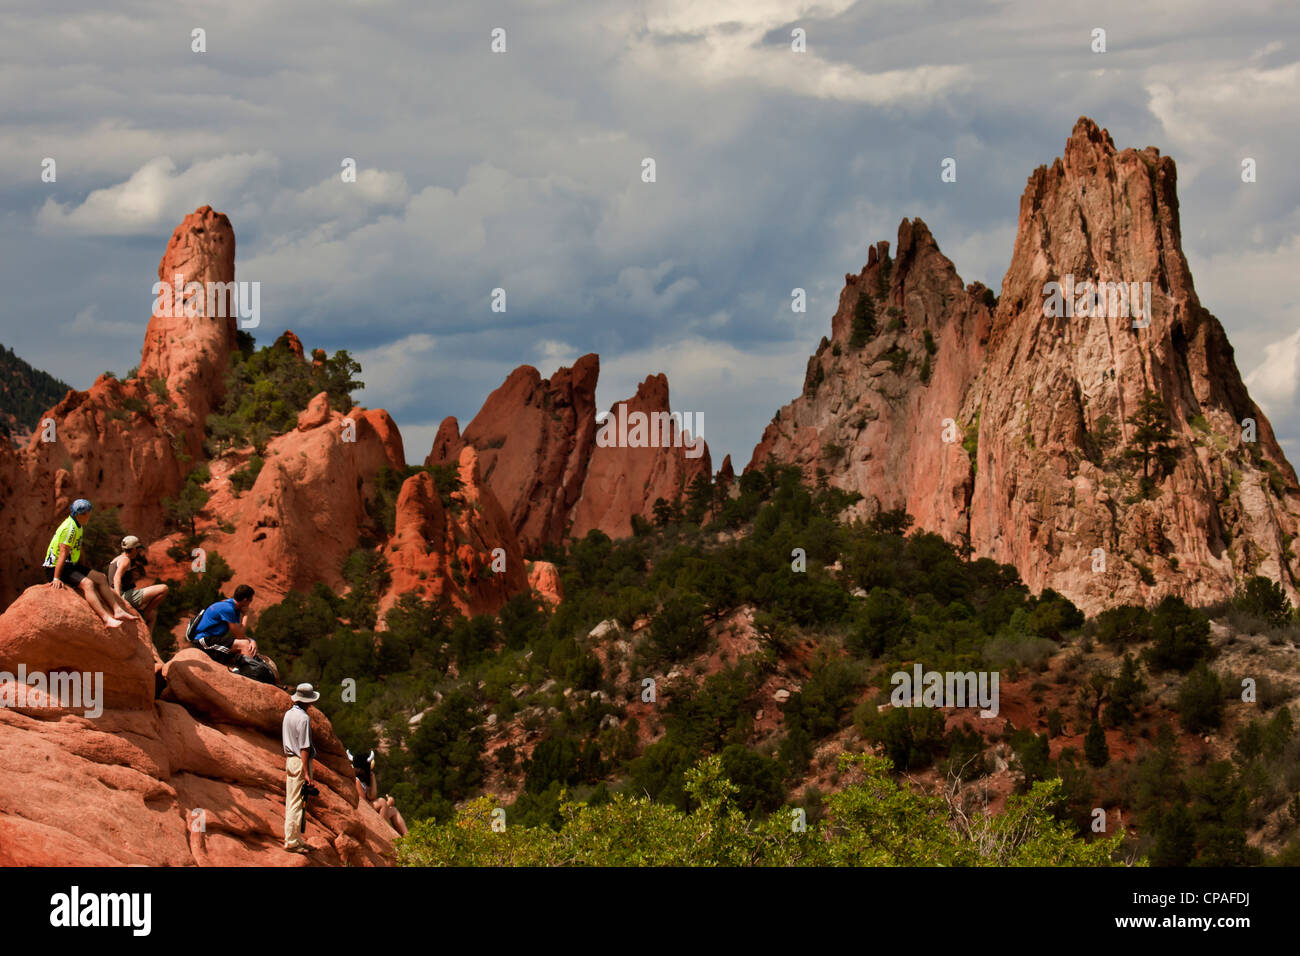 USA, Colorado, Colorado Springs. Spectators on the rocks of Garden of the Gods watching the 2011 USA Pro Cycling - Stock Image